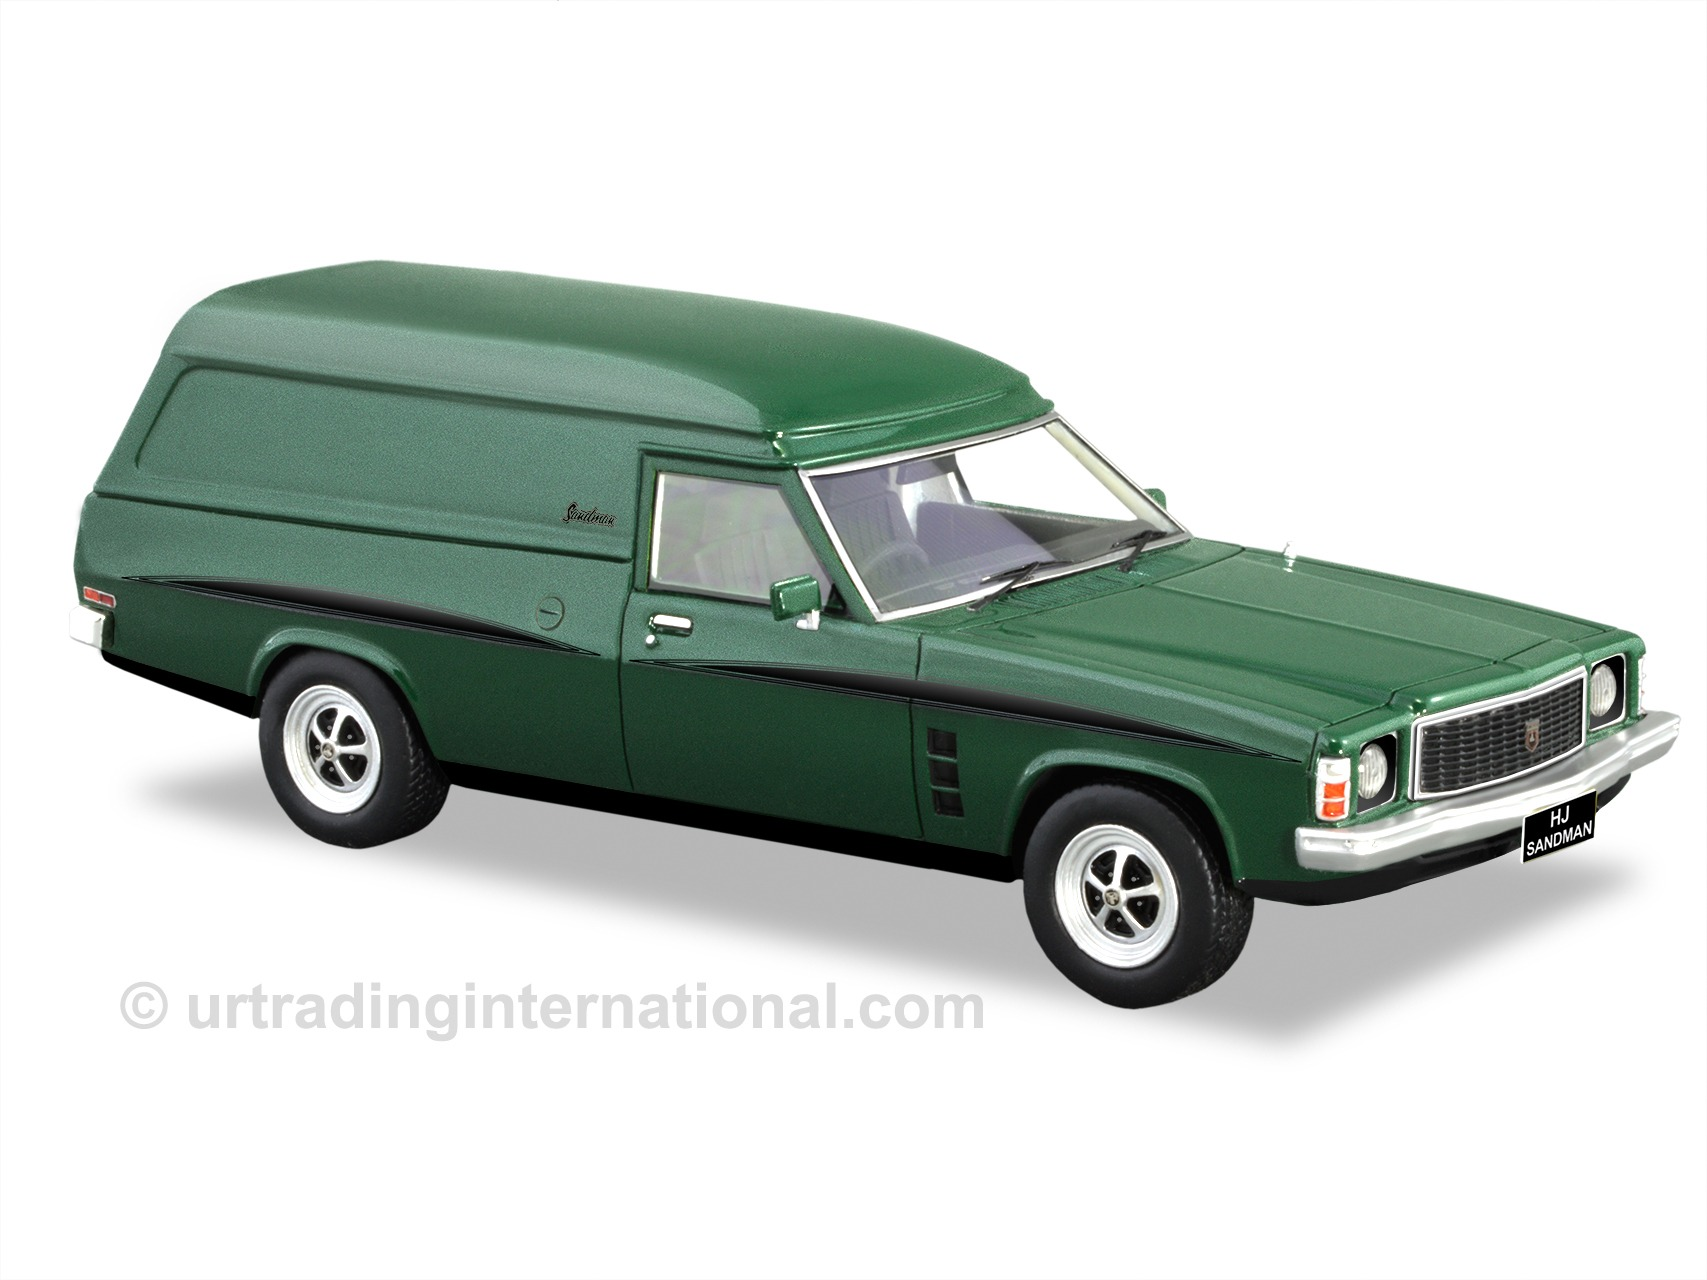 HJ Sandman Panel Van – Jade Green